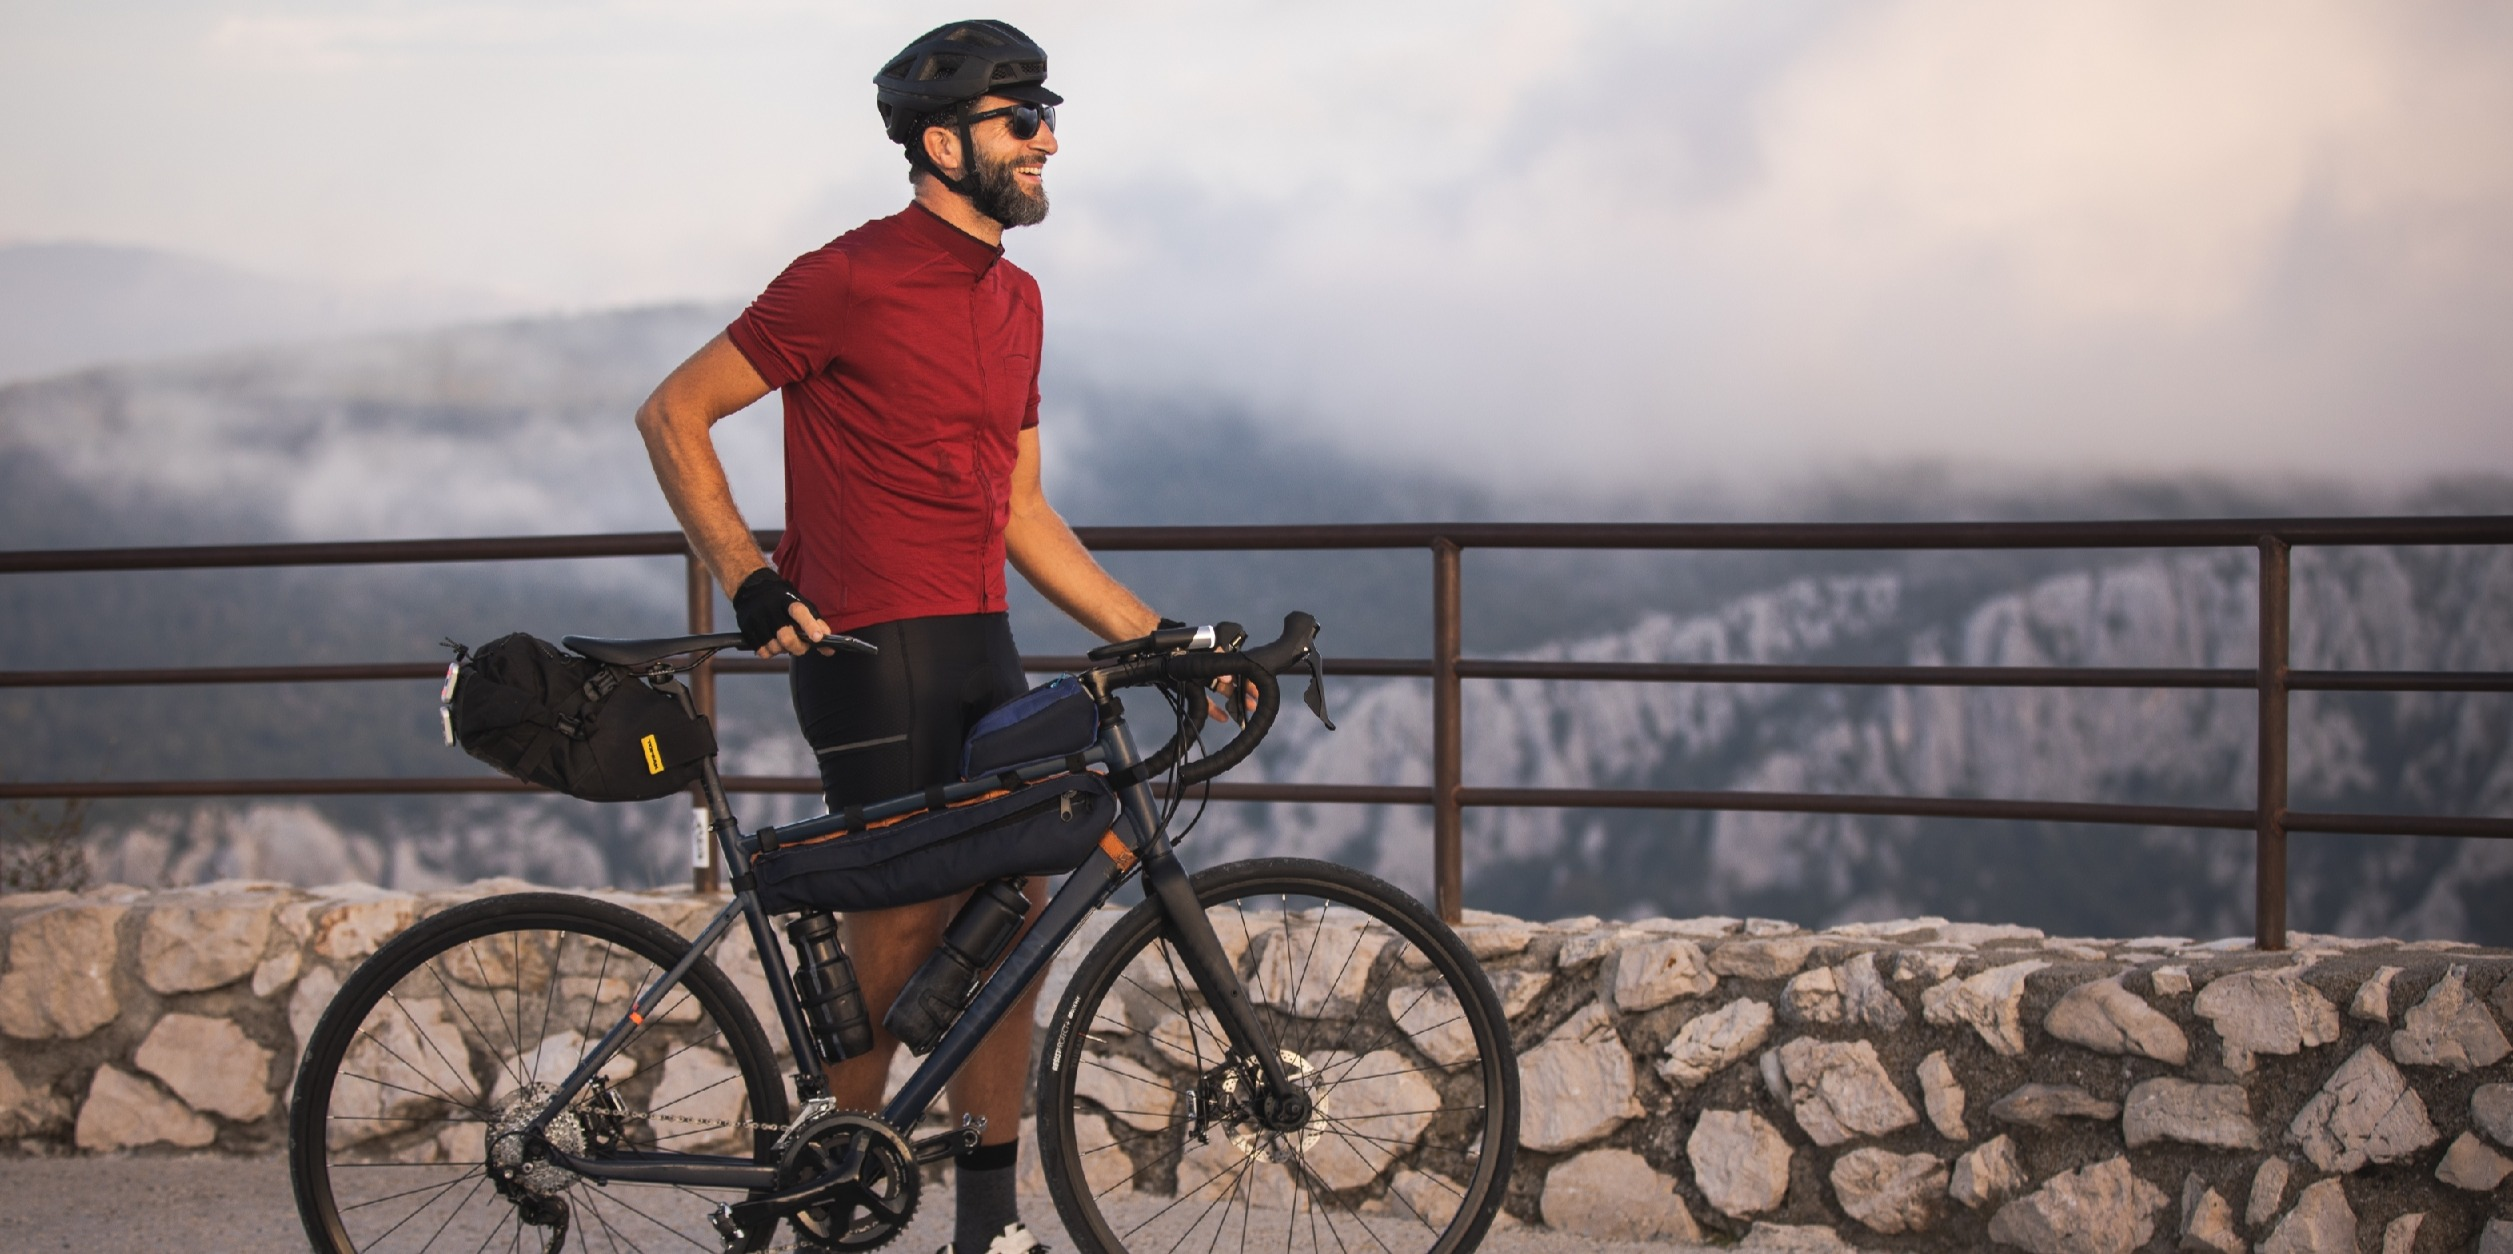 Where Is Good To Go Road Cycling For Beginners?